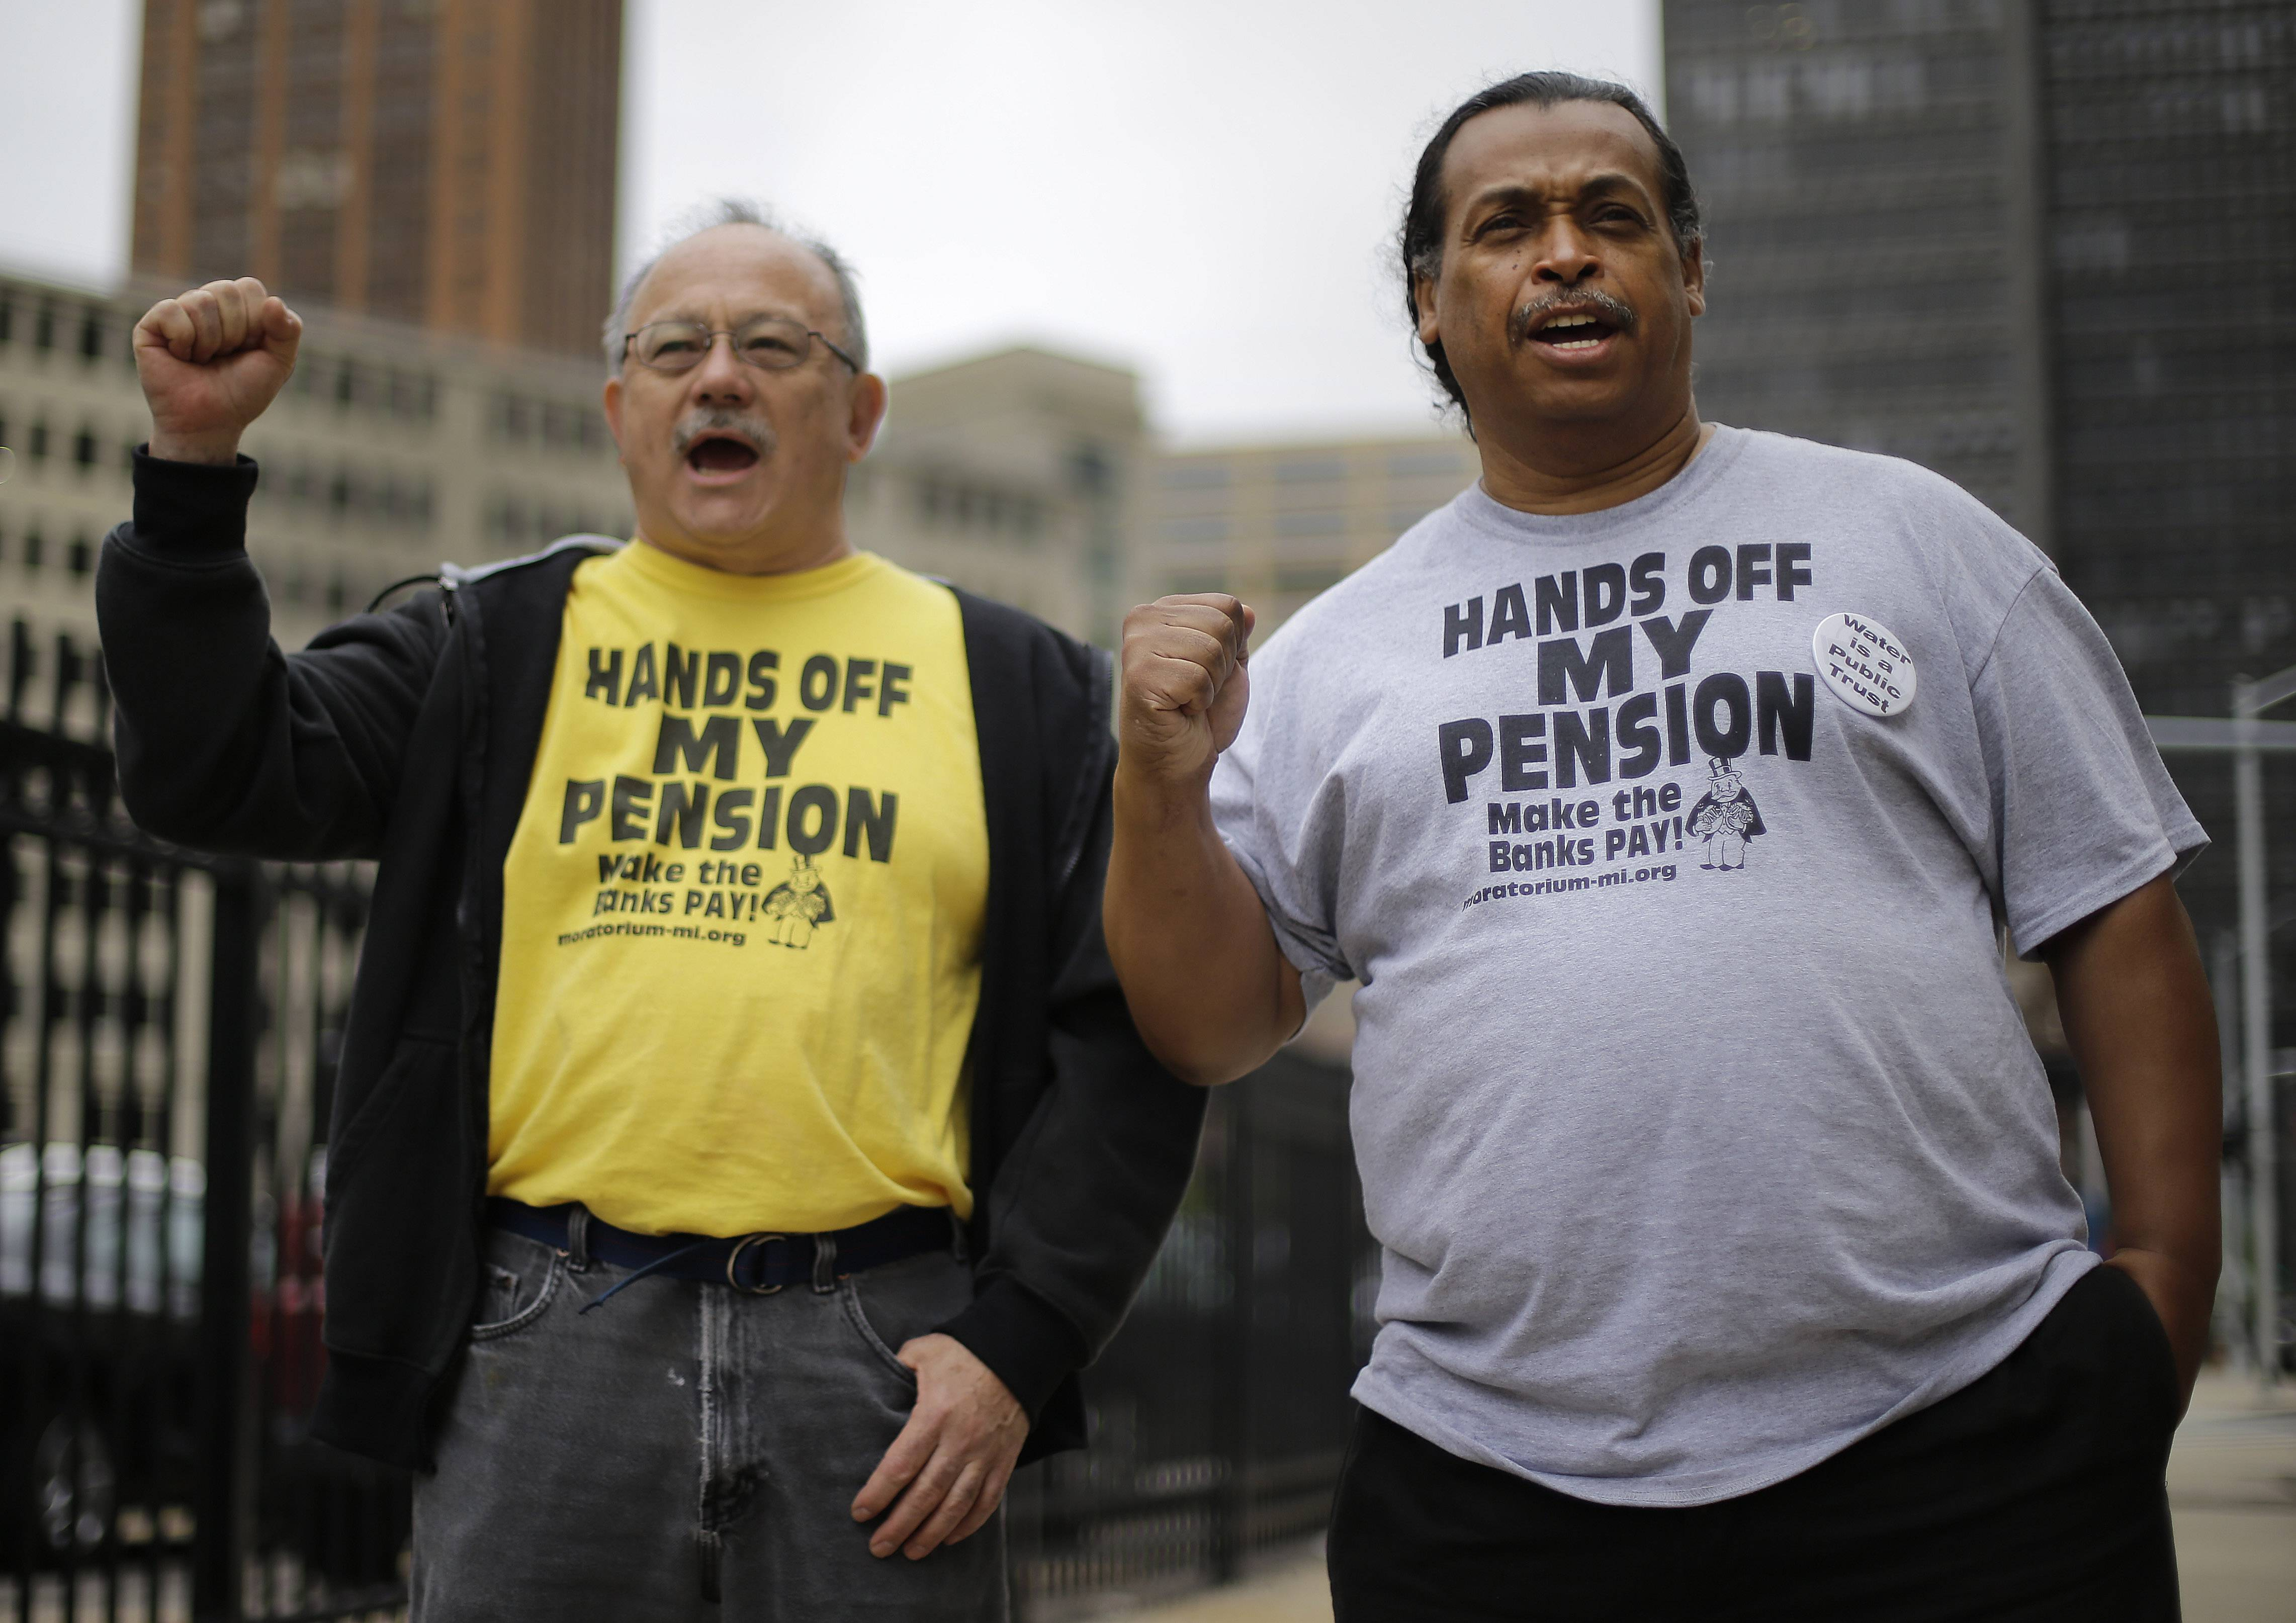 Detroit retirees Mike Shane, left, and William Davis protest near the federal courthouse in Detroit July 3. Ballots submitted by city workers, retirees, pensioners and other creditors likely will determine how quickly Detroit exits its historic bankruptcy. A major piece of the bankruptcy puzzle could fall into place Monday with the expected release of the results of a vote by creditors, including more than 30,000 retired and current city workers, on whether to accept millions of dollars in cuts.